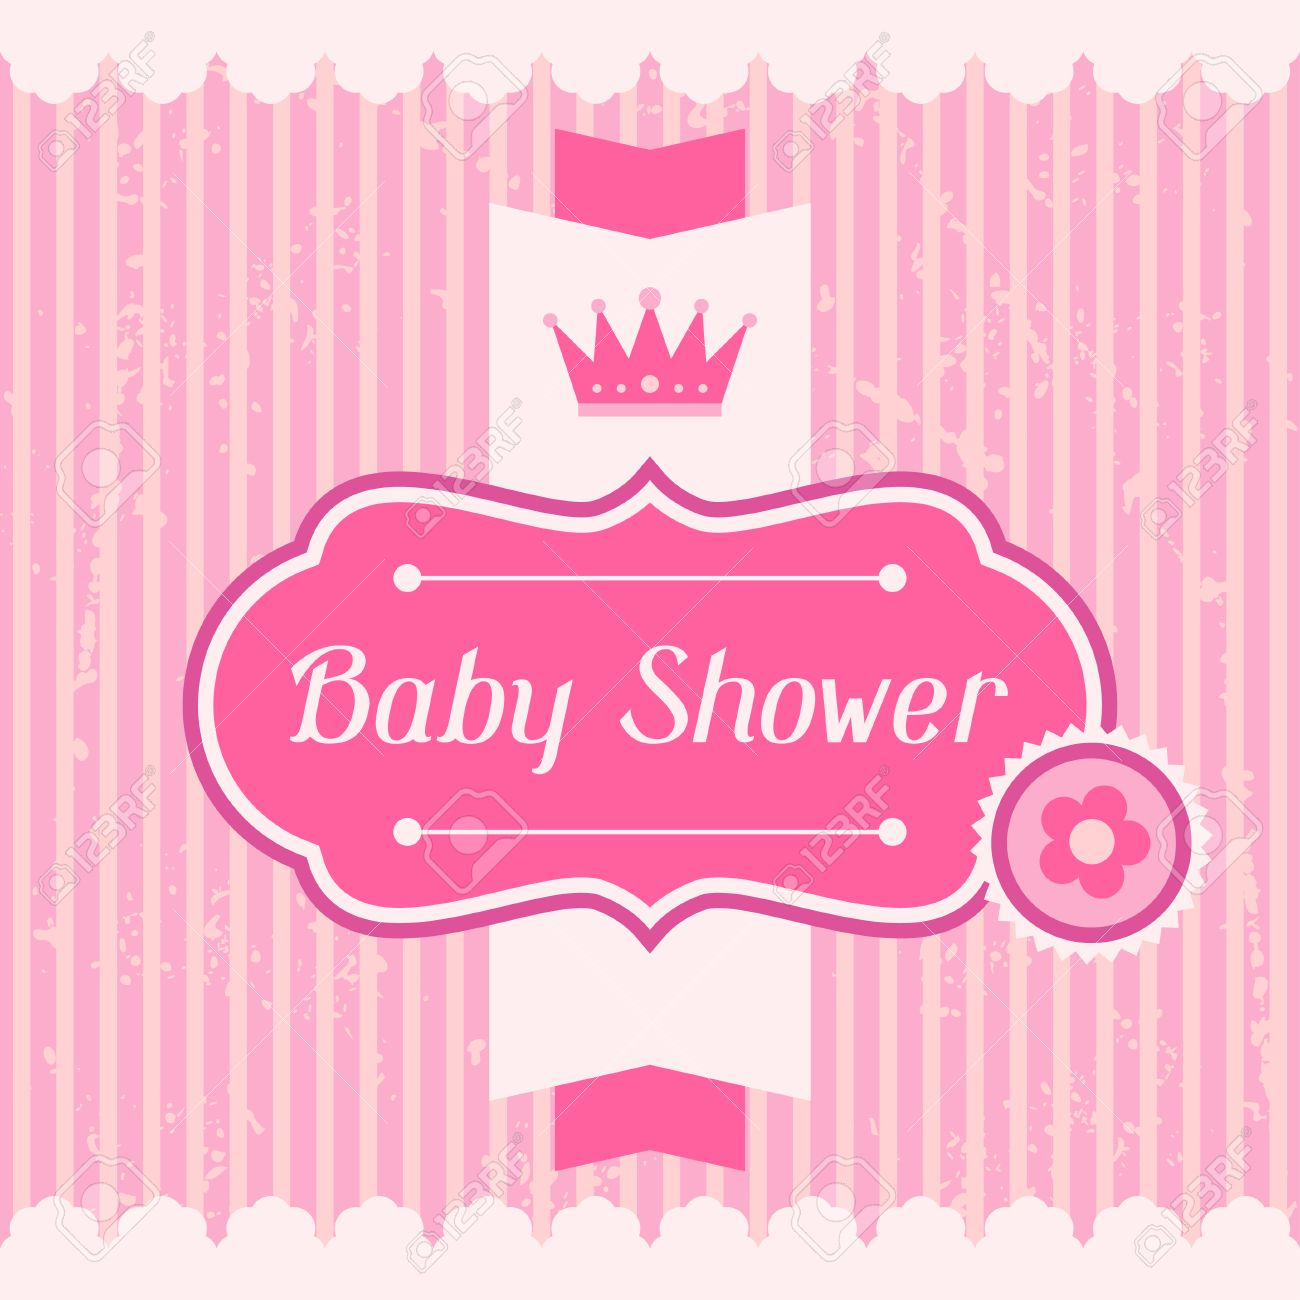 Girl Baby Shower Invitation Card. Stock Vector   24532213